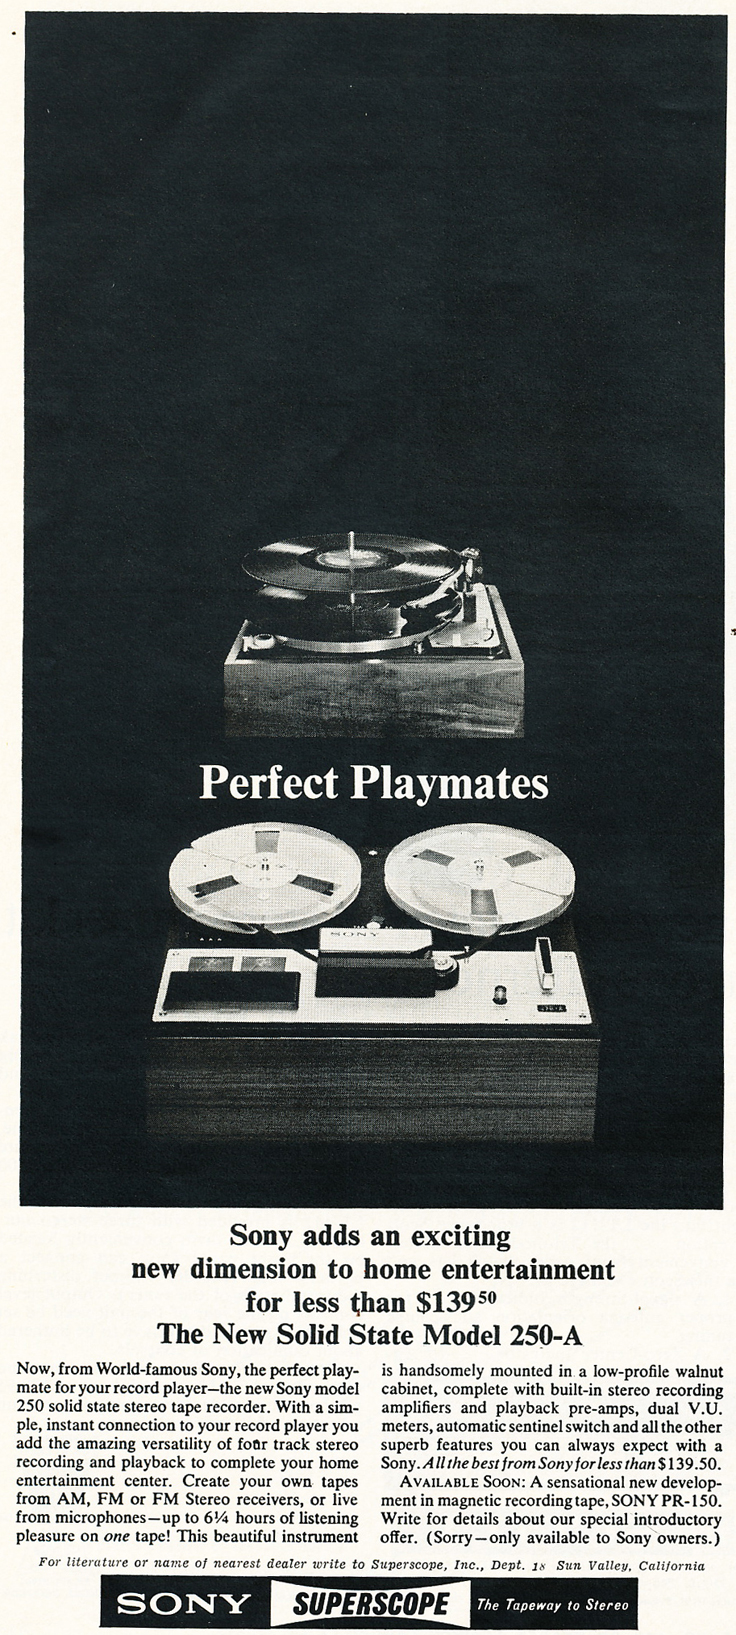 1965 ad for the Sony TC-350 reel tape recorder in the Reel2ReelTexas.com's images/R2R/vintage recording collection